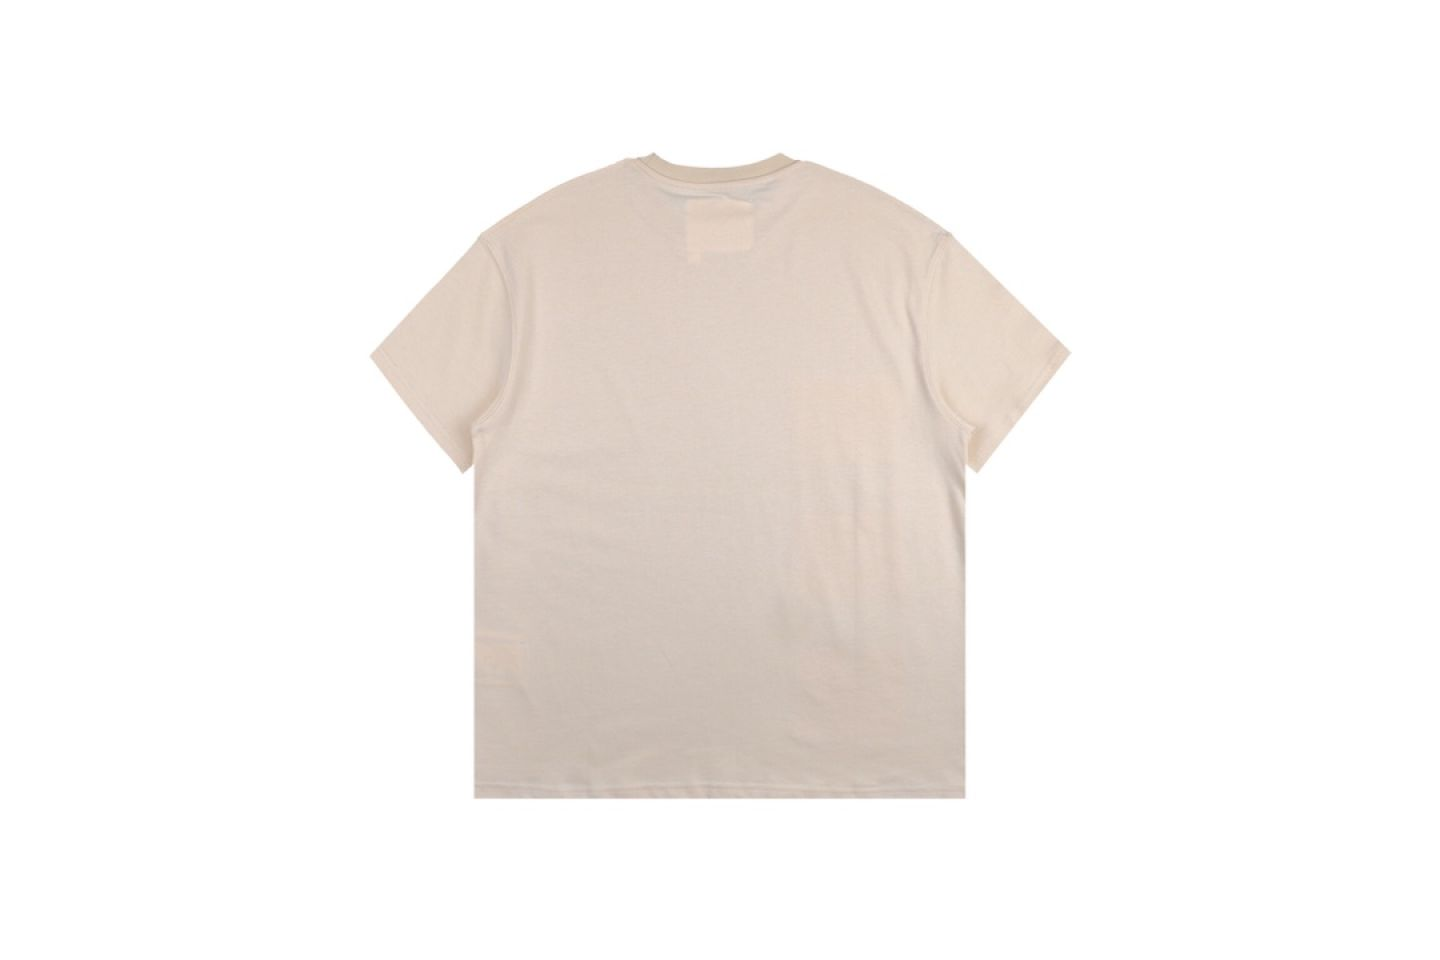 Shirt A-COLD-WALL cold wall oil painting photo short sleeve beige 5 a_cold_wall_cold_wall_oil_painting_photo_short_sleeve_beige__5